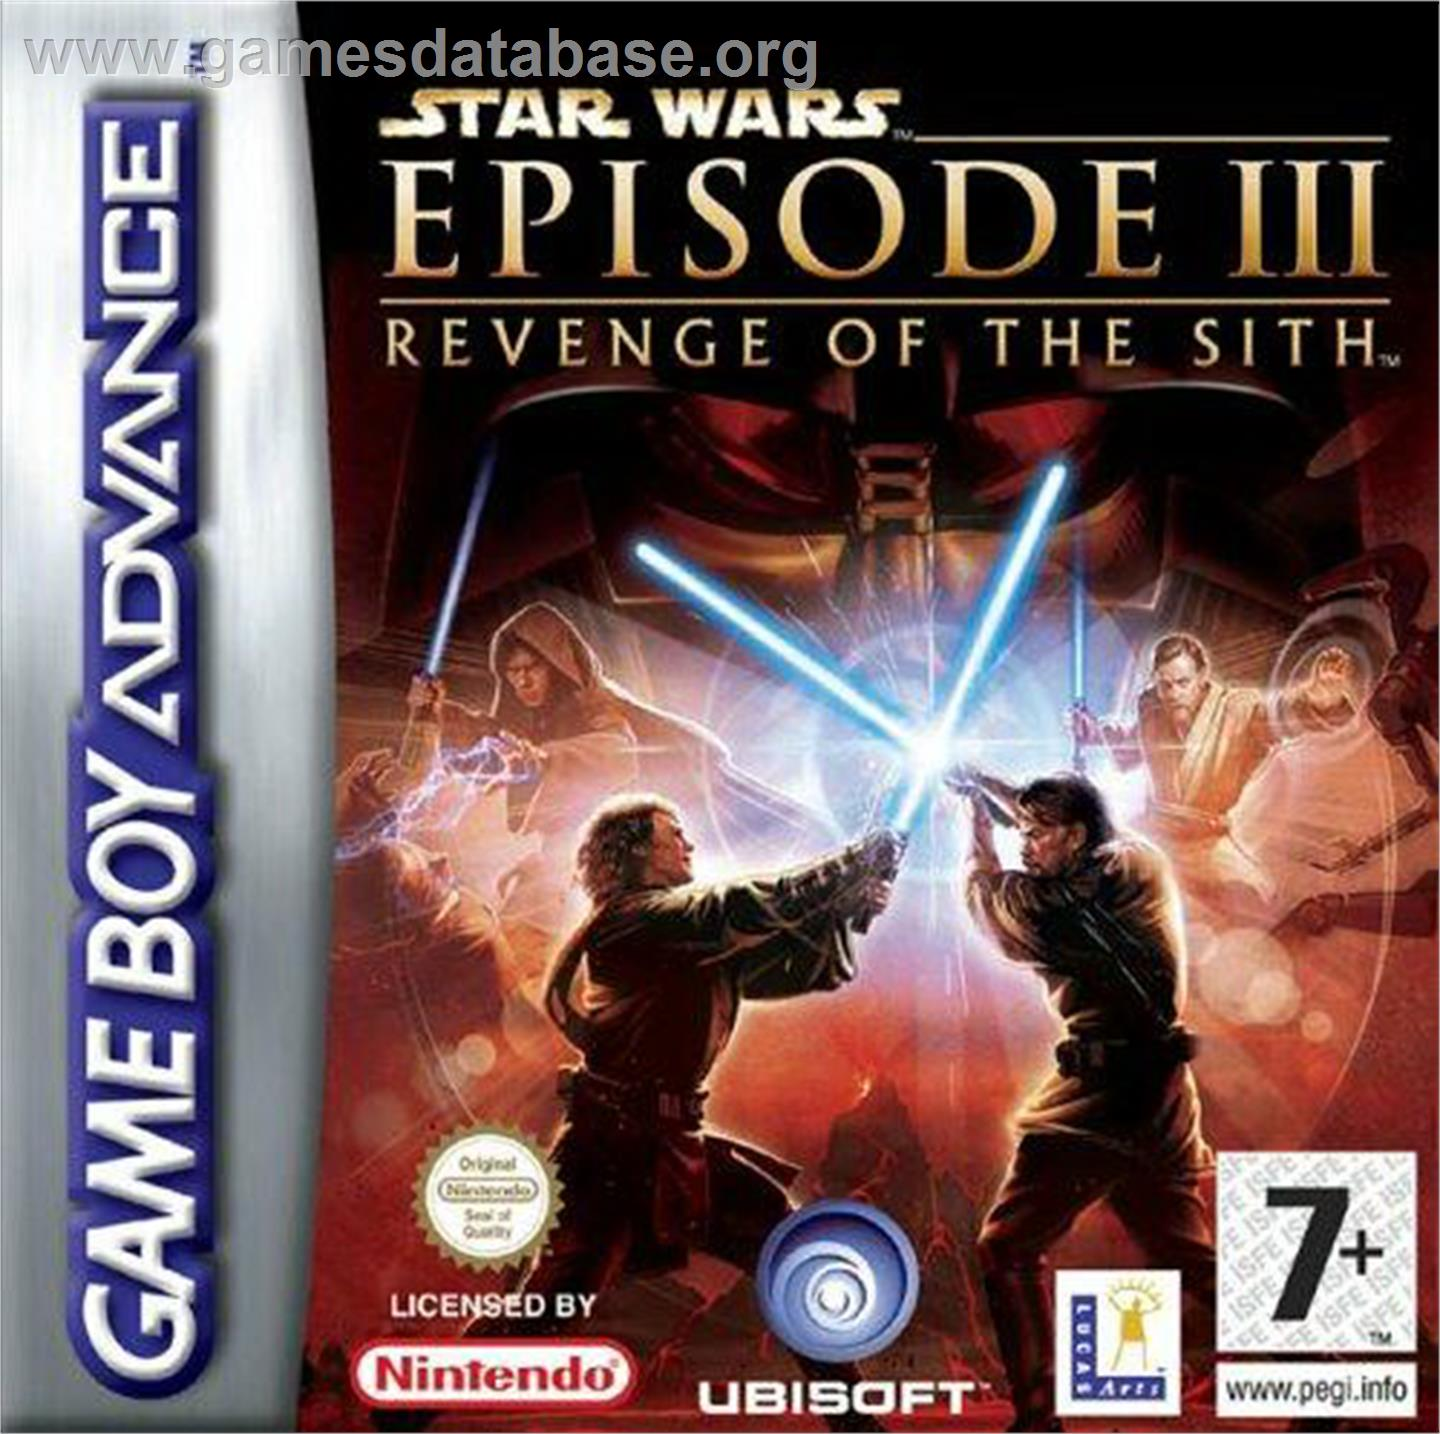 Star Wars Episode III Revenge of the Sith video game ...